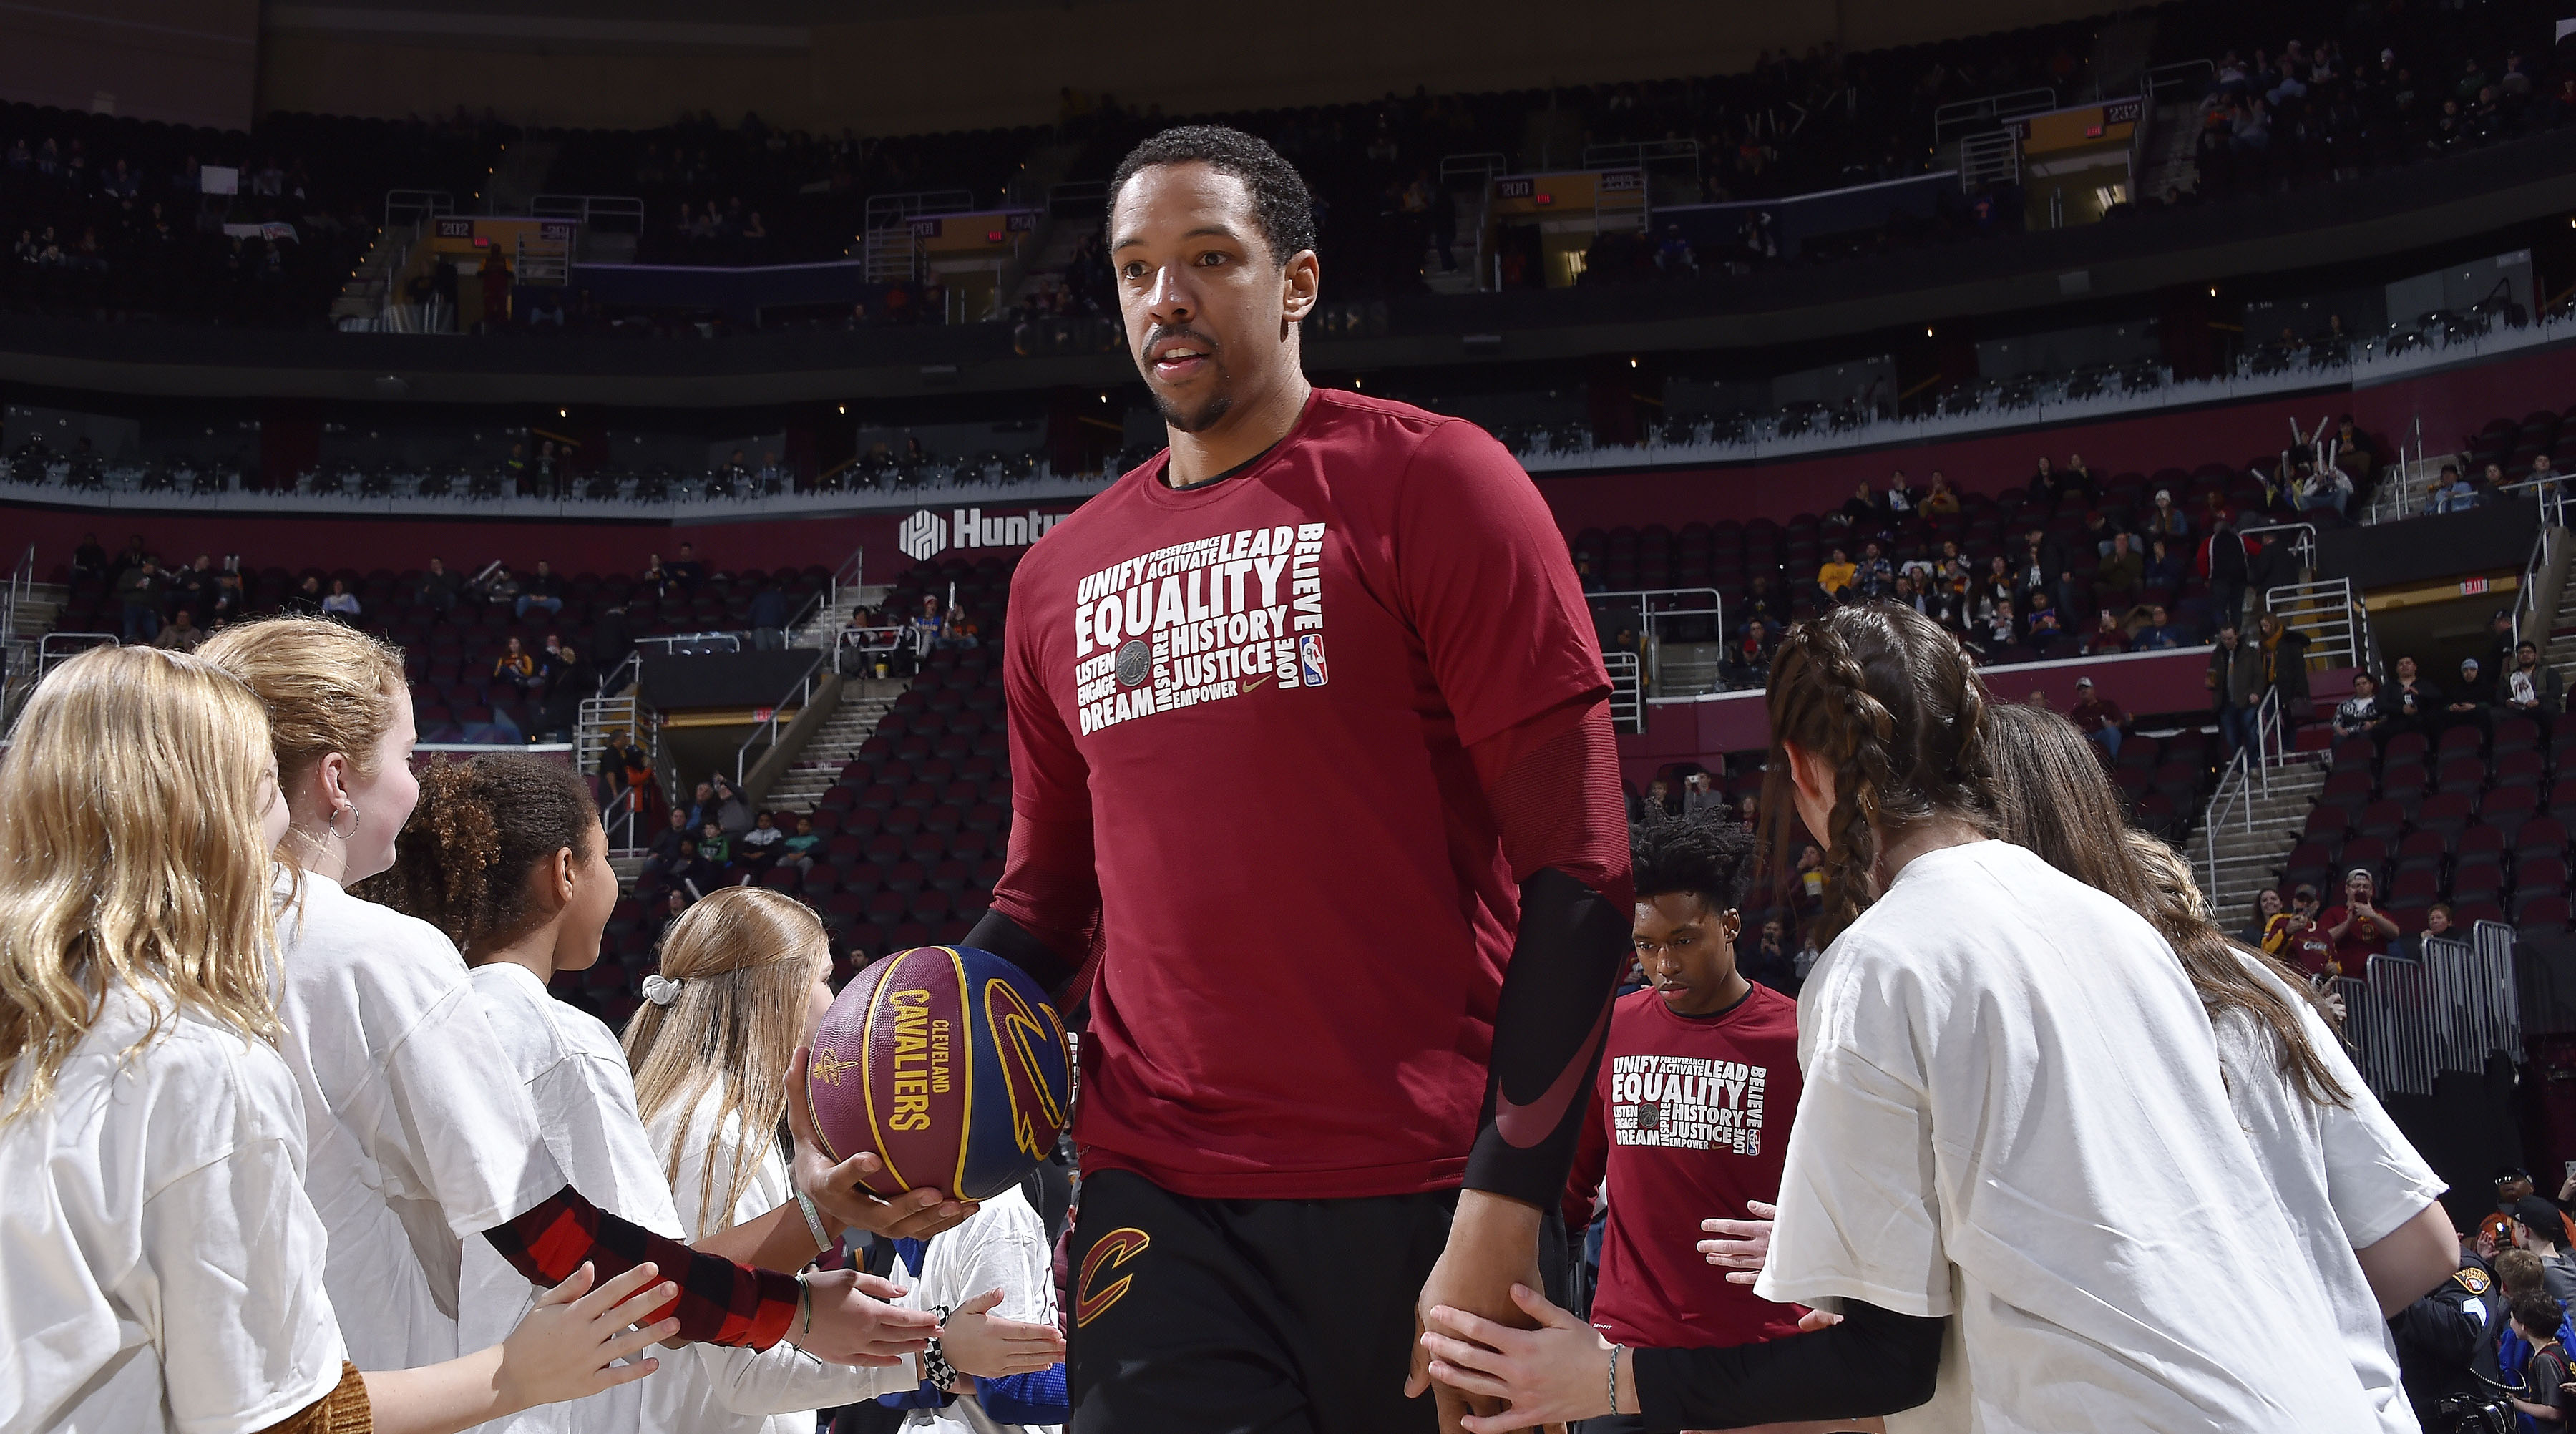 Channing Frye accepting challengers